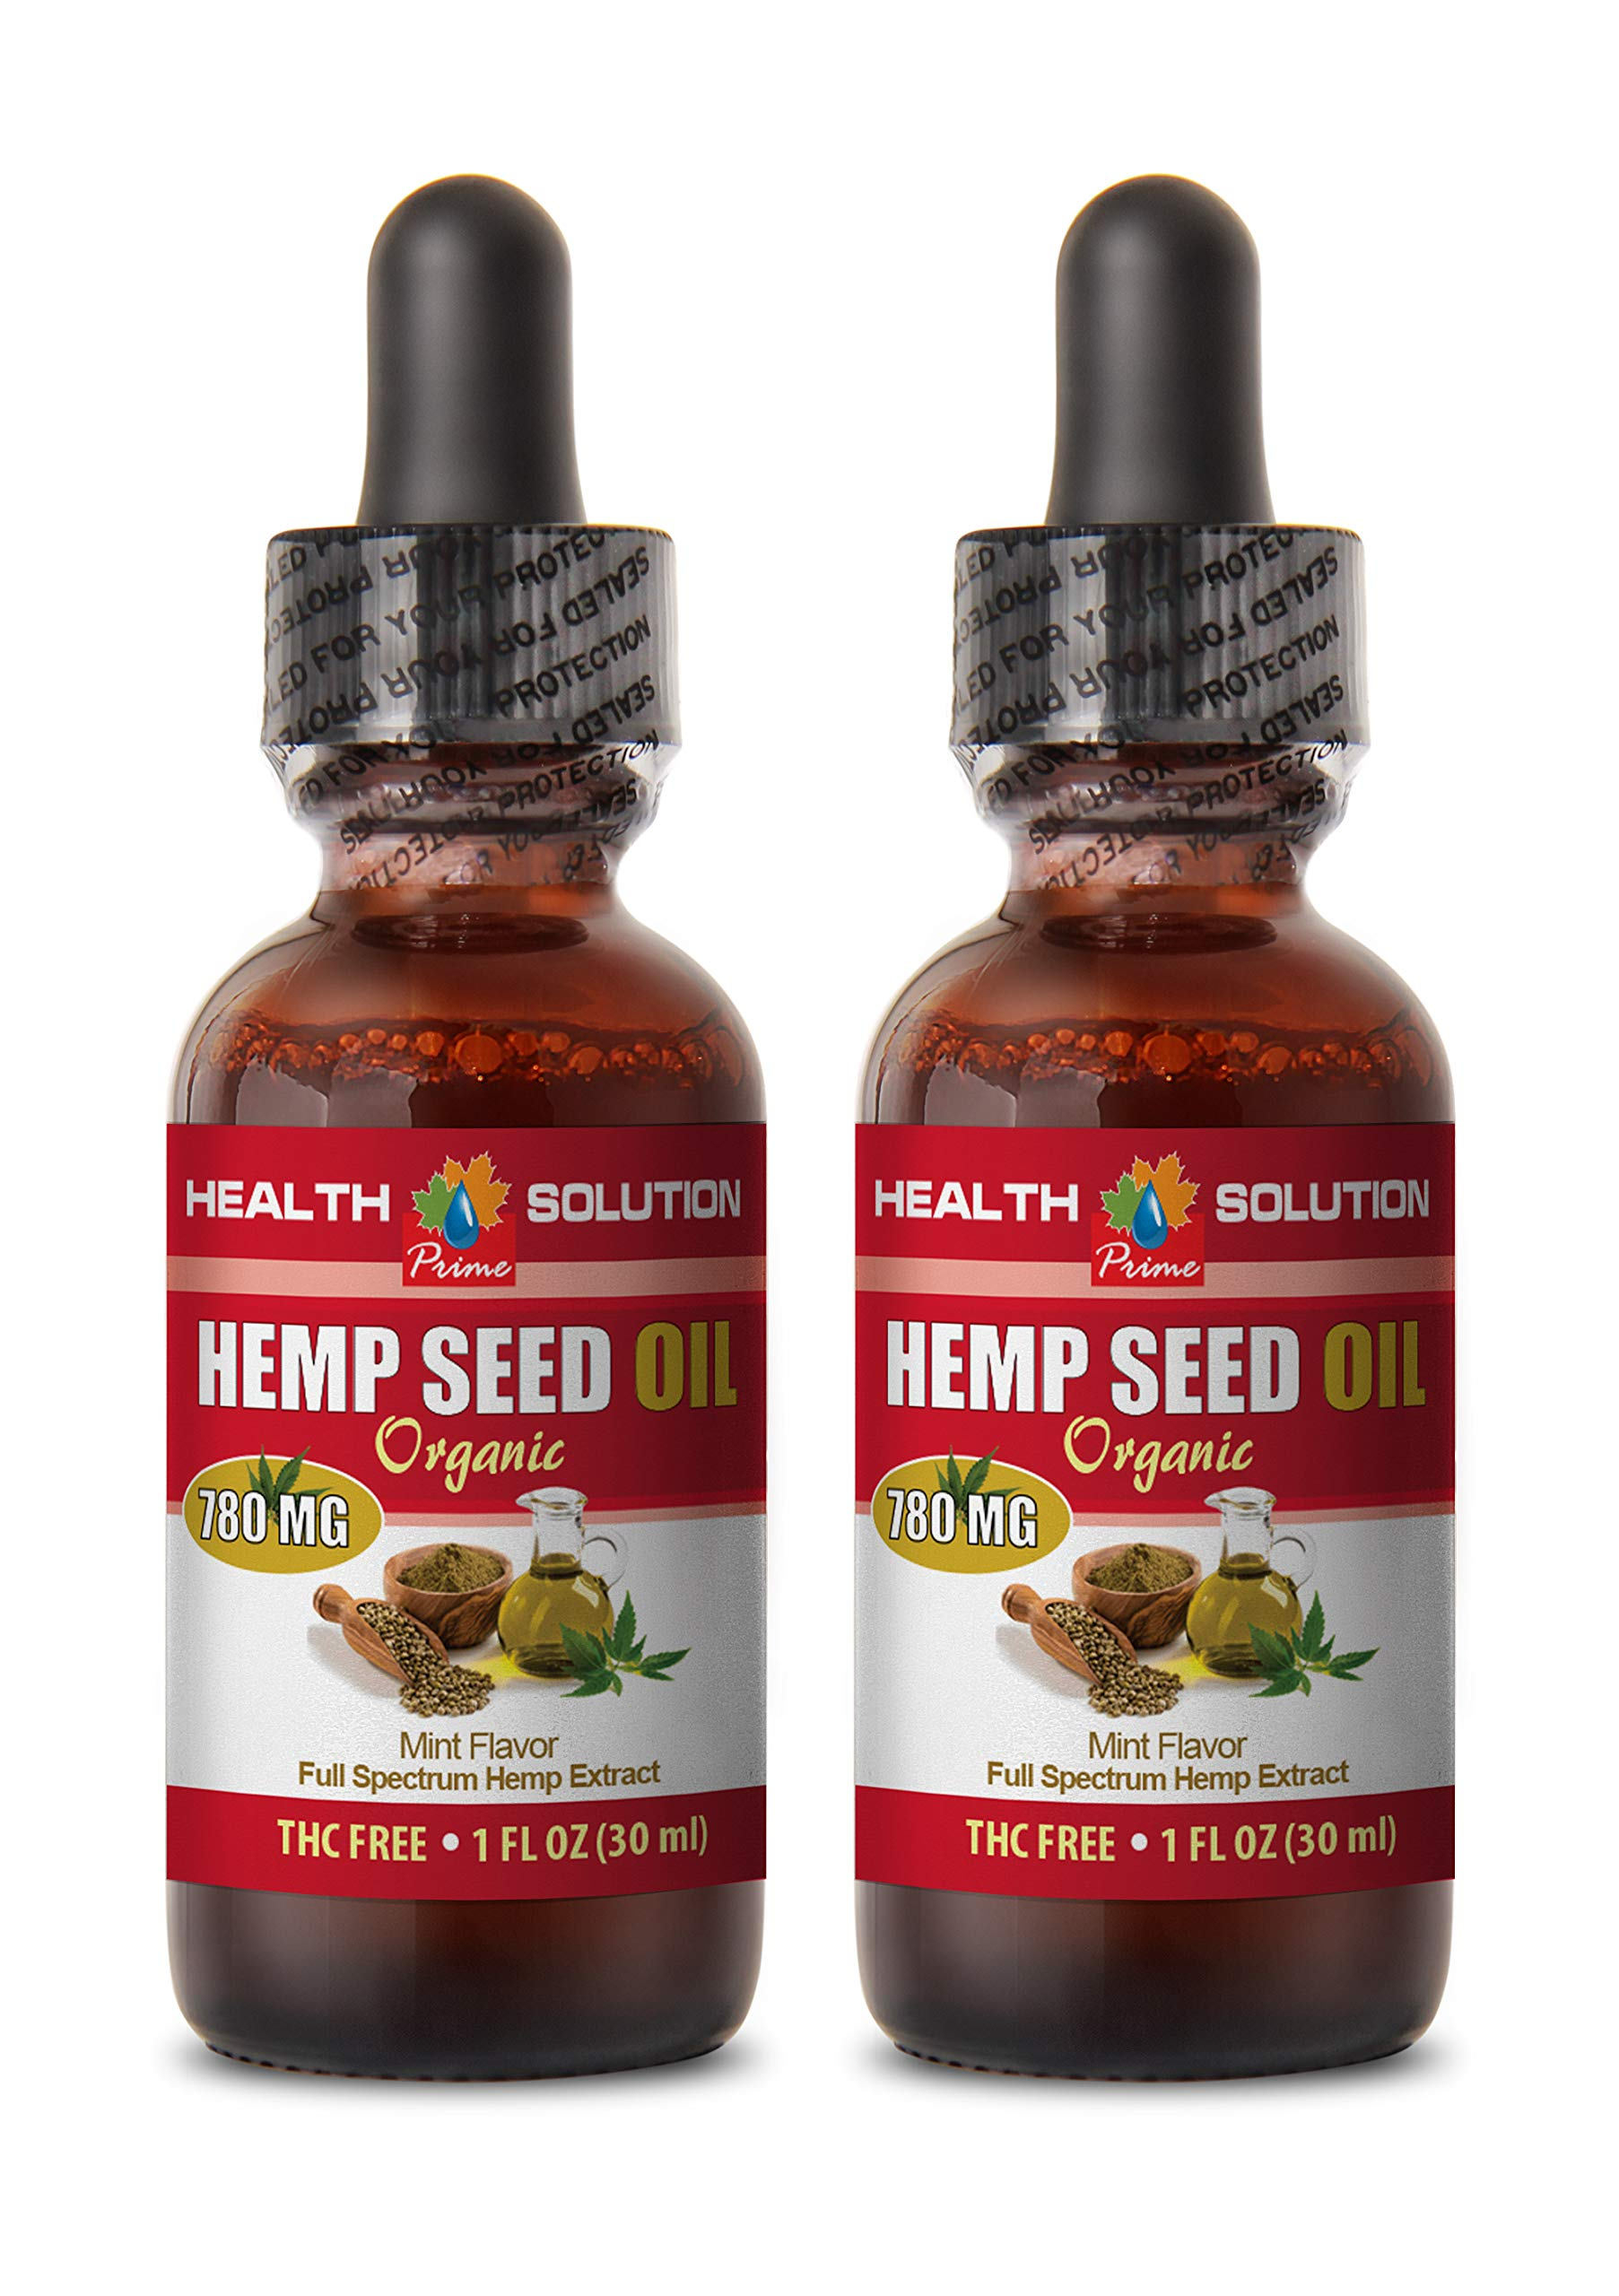 Stress Relief for Adults Anxiety - Hemp Seed Oil Organic 780 MG Drops - Hemp Seed Oil Power - 2 Bottles 2 FL OZ (60 ML)